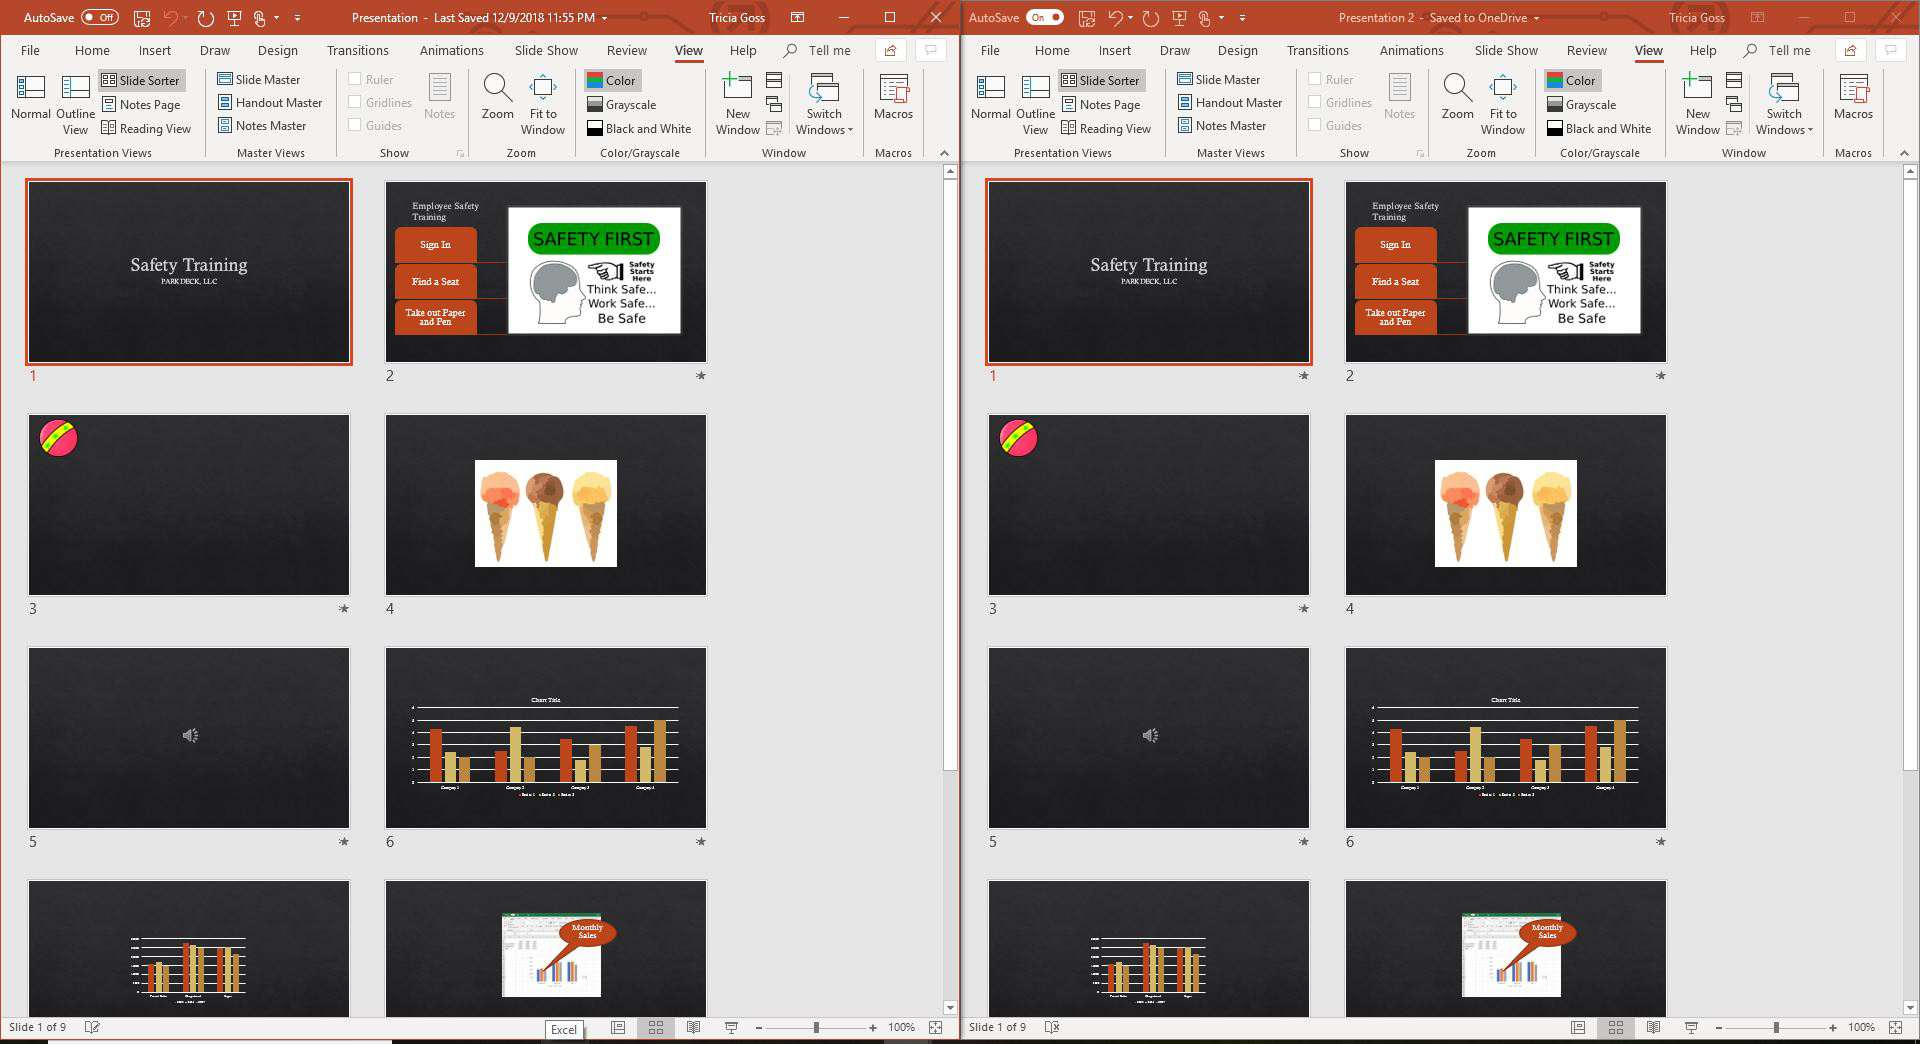 View Two PowerPoint Presentations at the Same Time